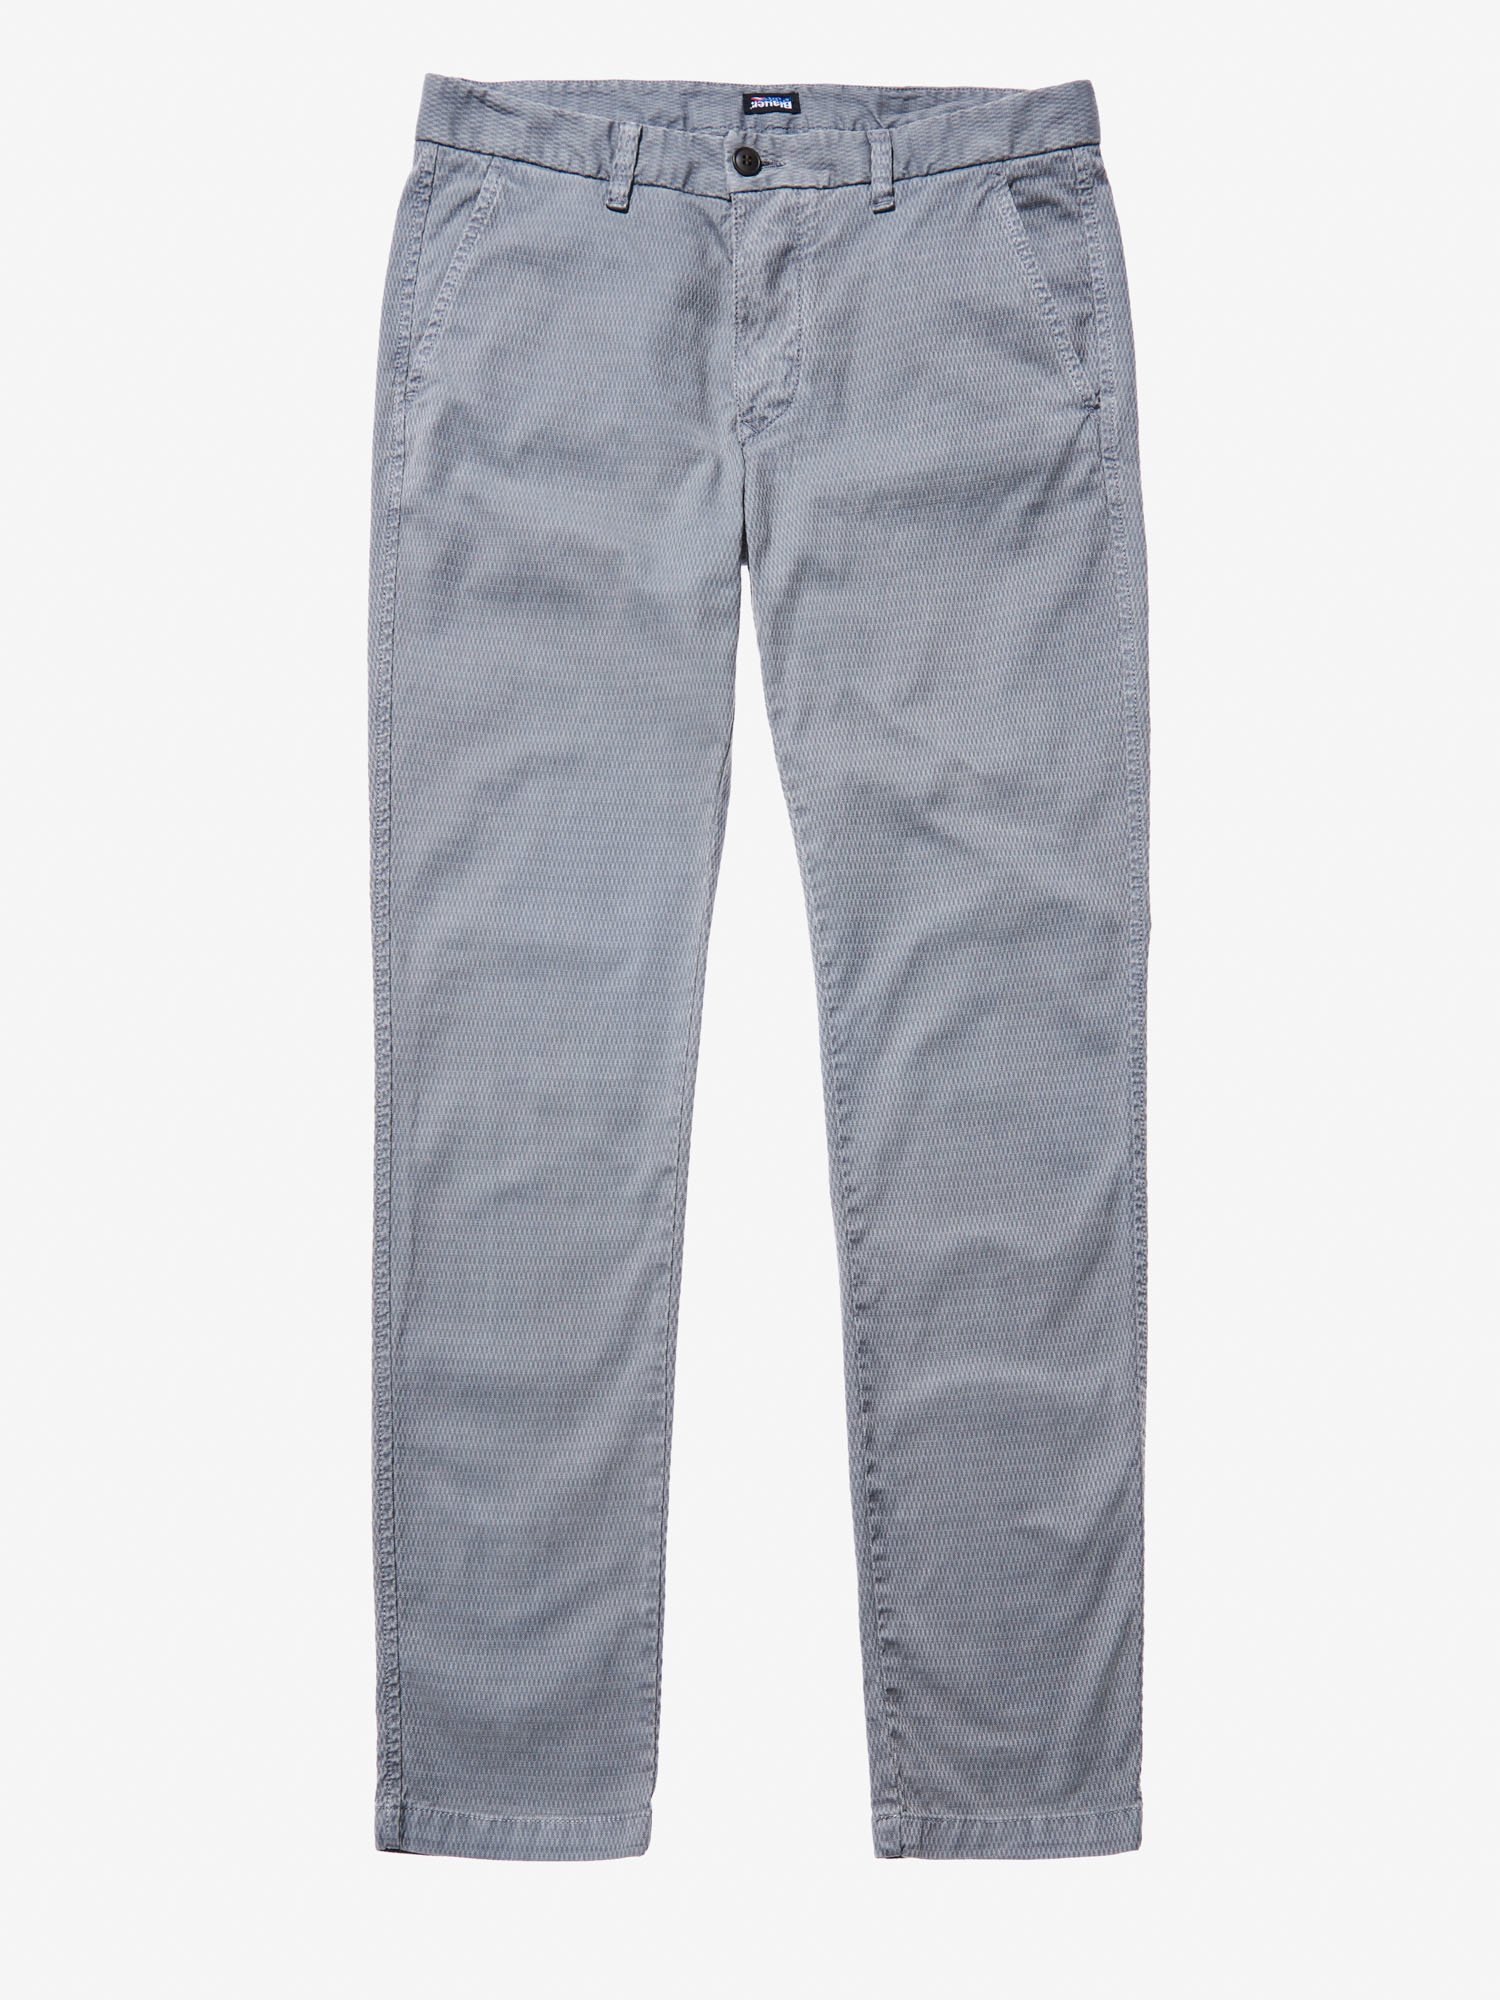 Blauer - JACQUARD CHINO PANTS - Dark Grey - Blauer